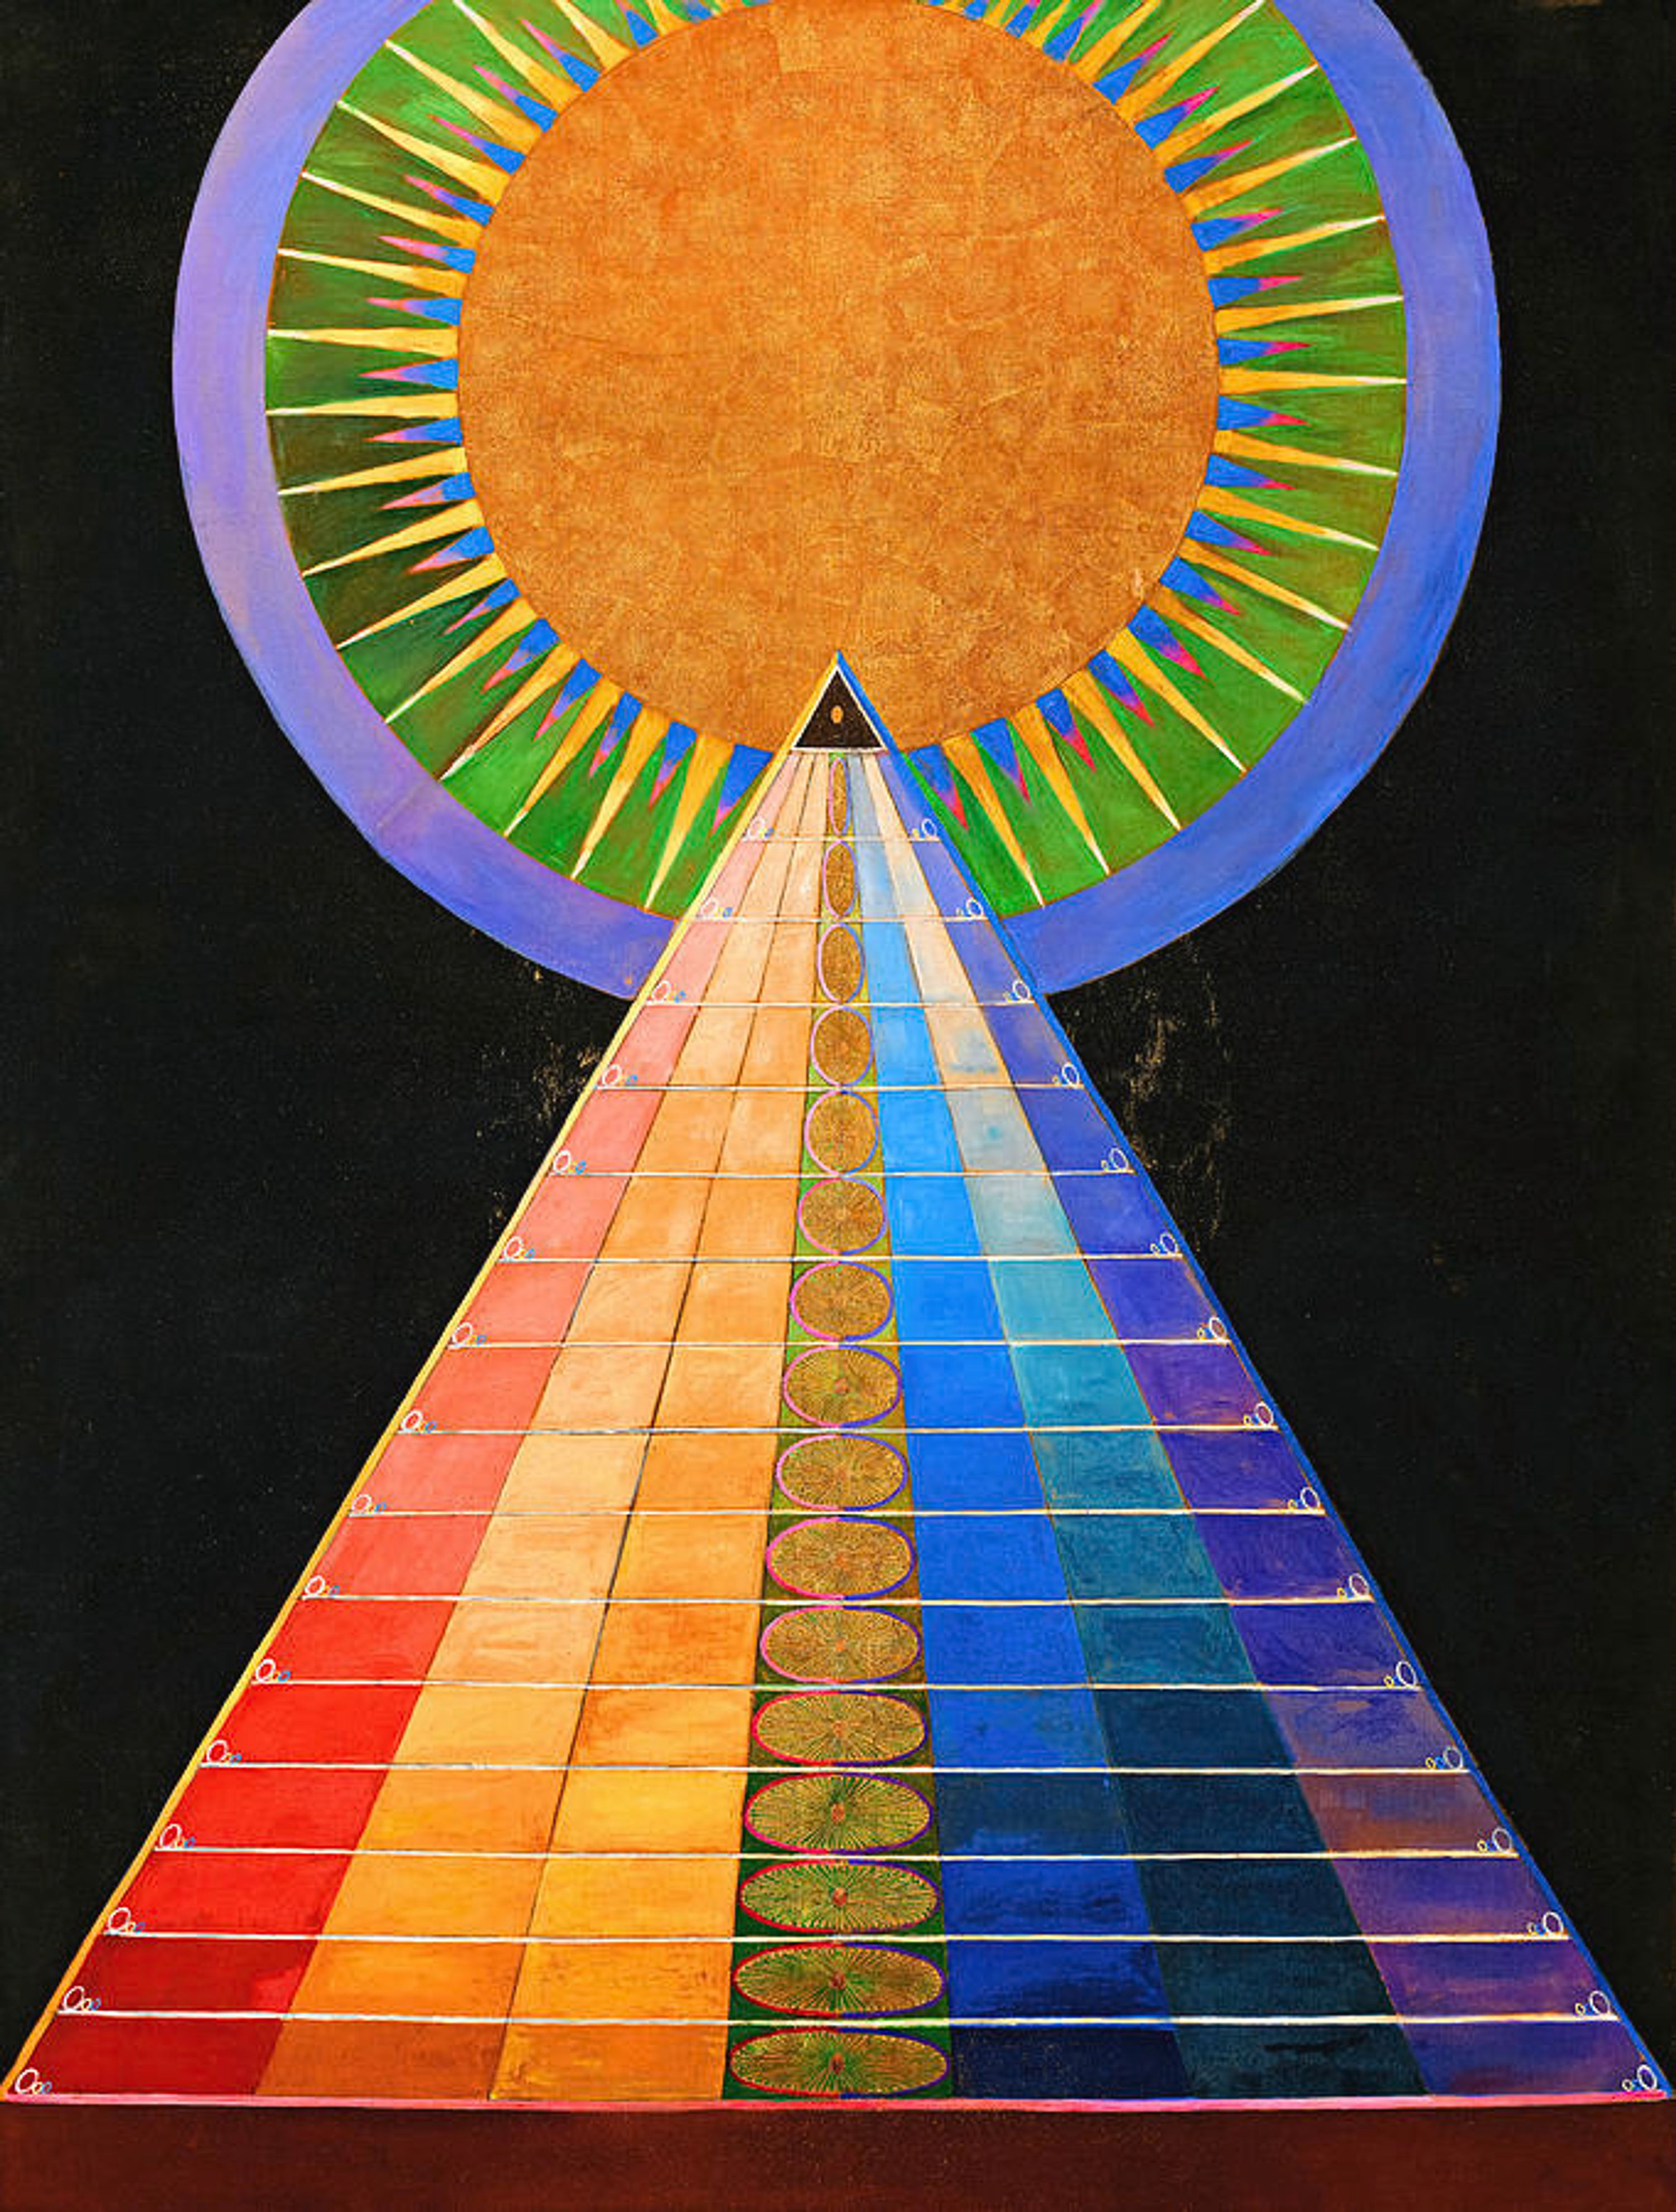 """Abstract pyramid painting entitled """"Altarpiece No. 1, Group X"""" by Hilma Van Klimpt"""